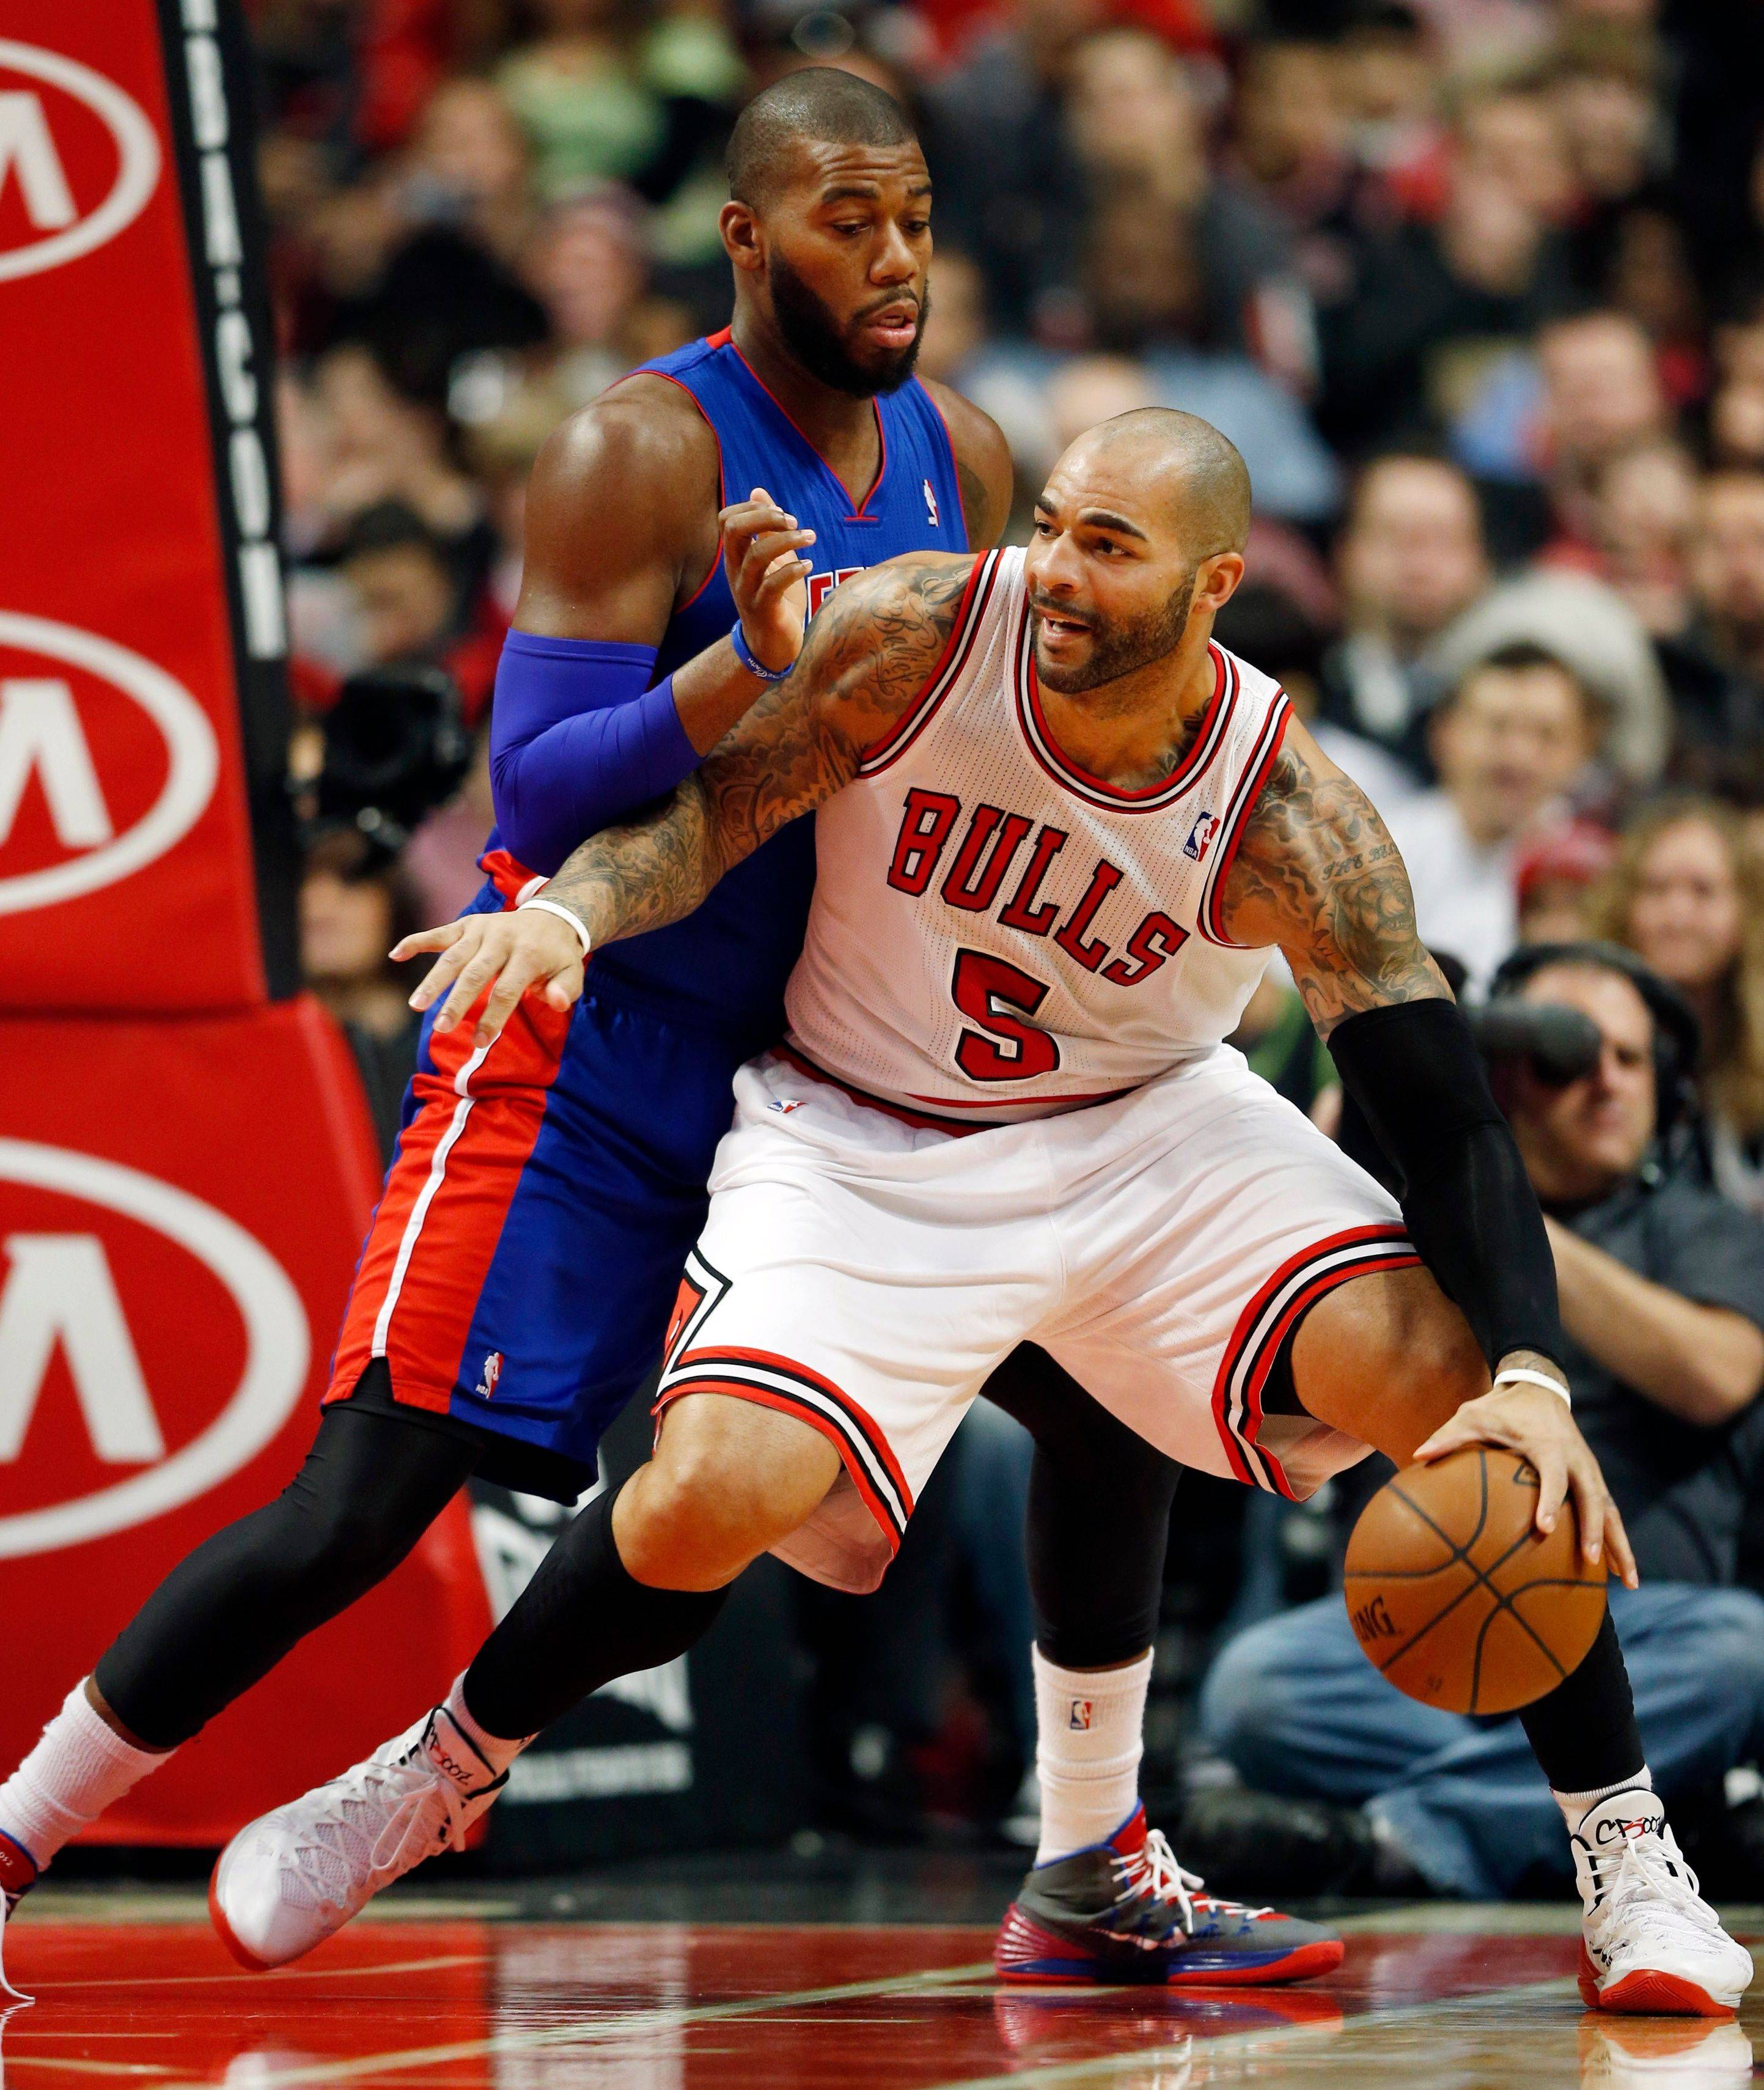 Carlos Boozer probably won't play today against the Lakers.